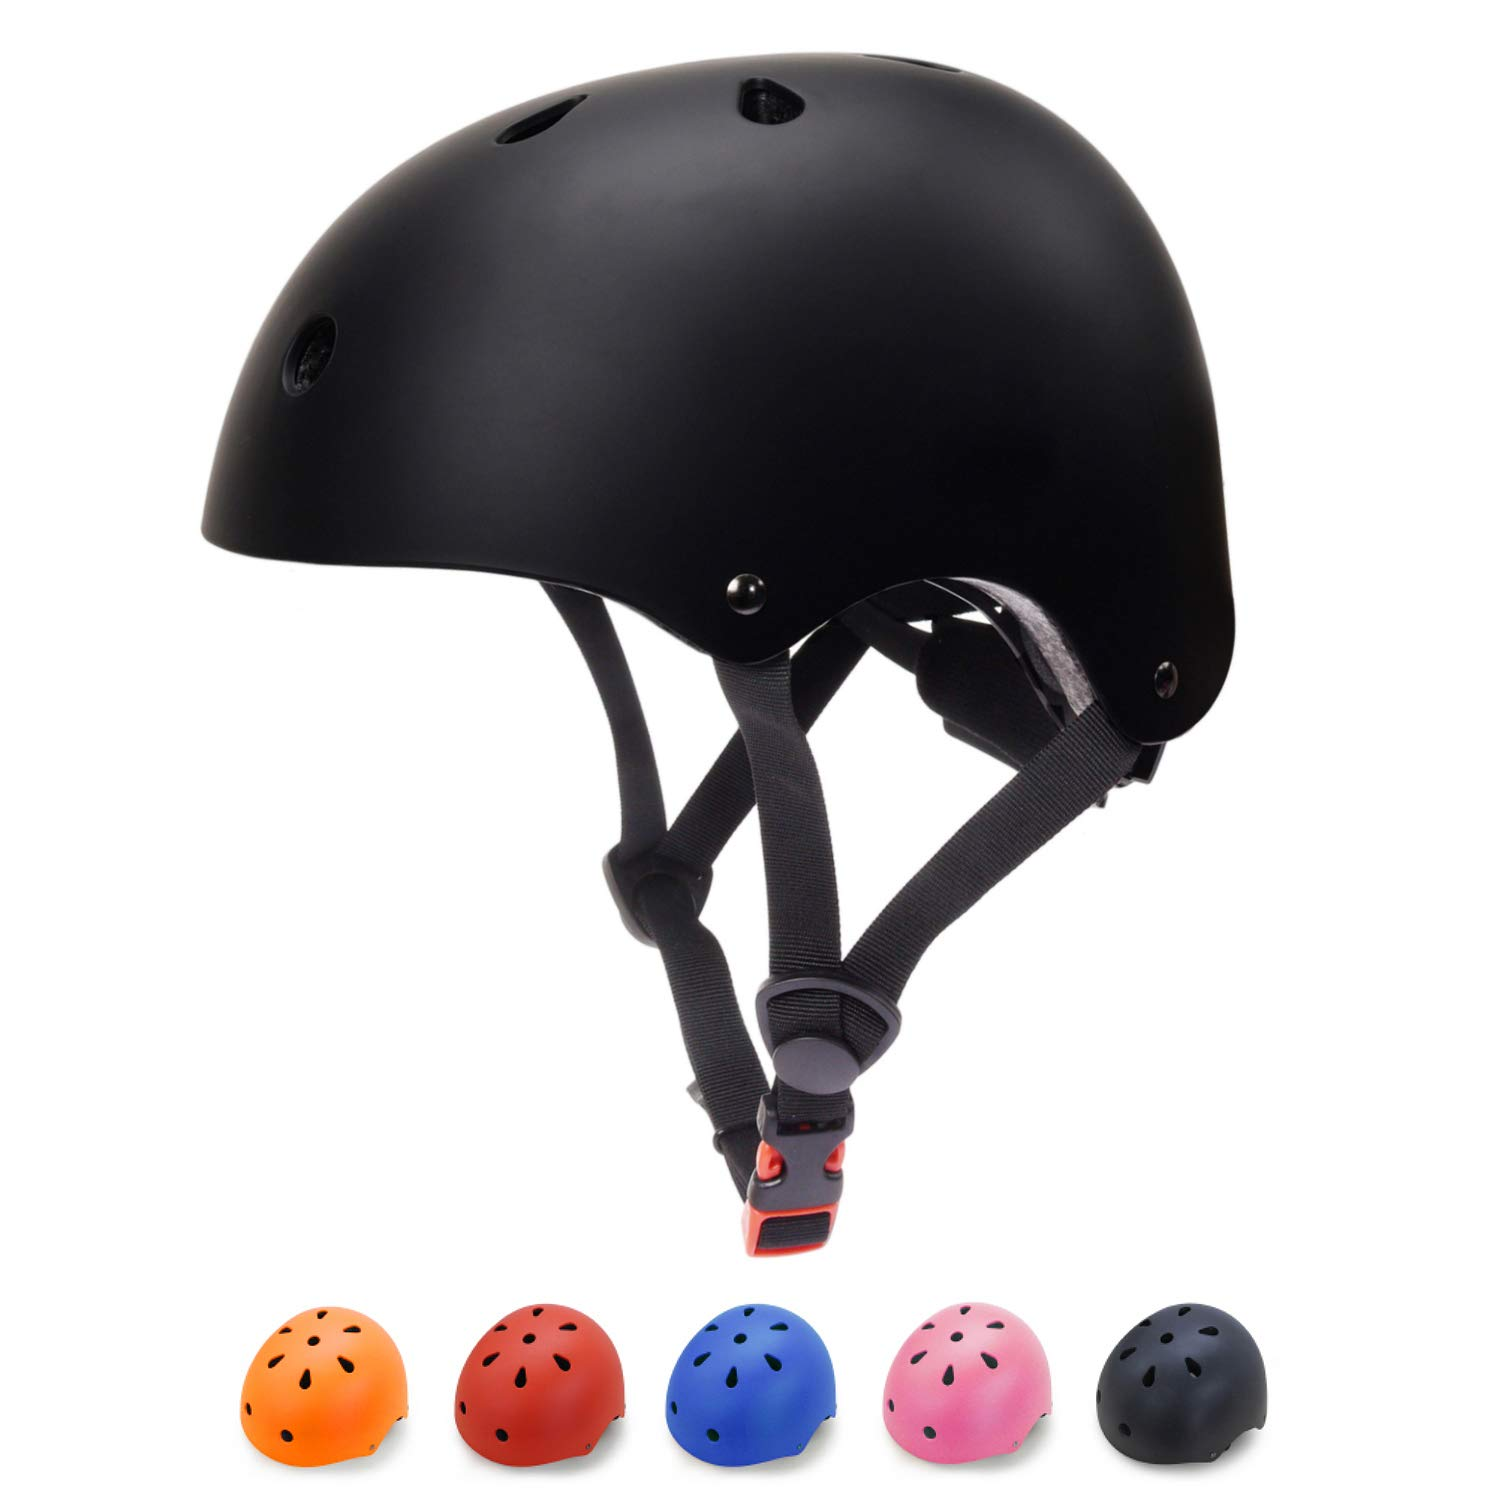 Toddler Bike Helmet 3-5 Kids Helmet Multi-Sport Skateboard Scooter Cycling Helmet CPSC Certified Impact Resistance Ventilation Adjustable Helmet Kids (Black, Small)